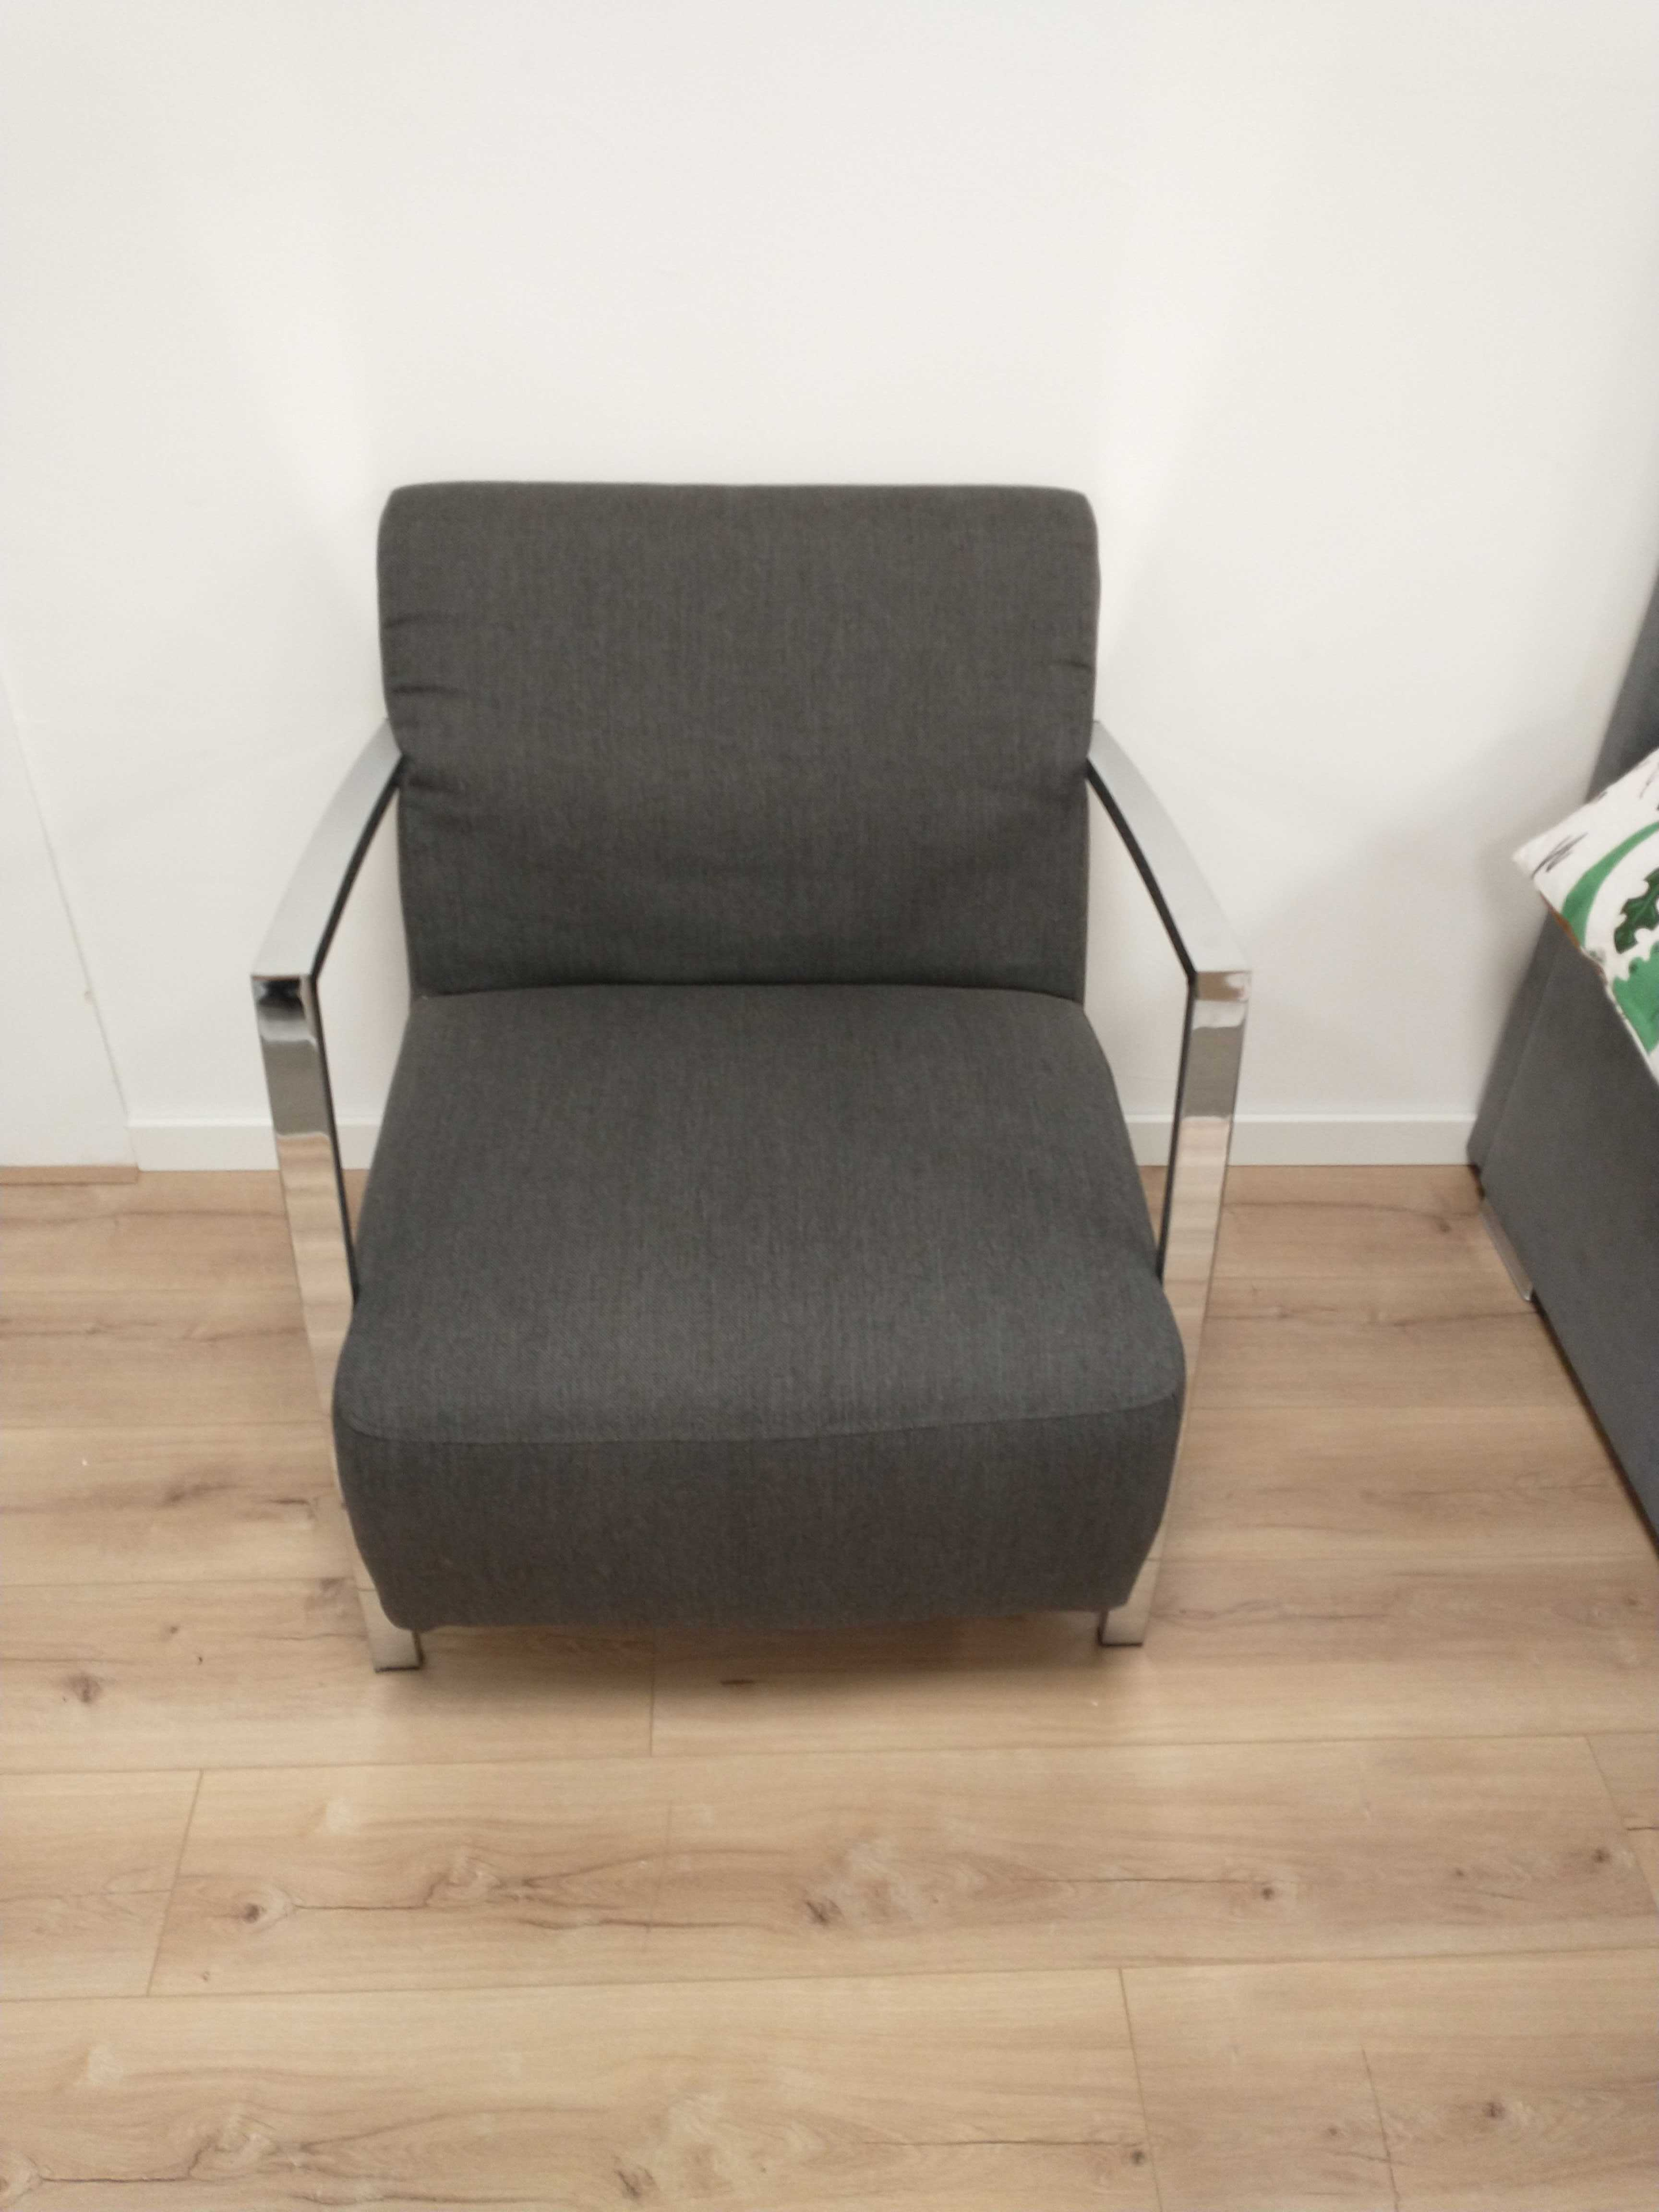 Showmodel fauteuil Teo - Eindhoven